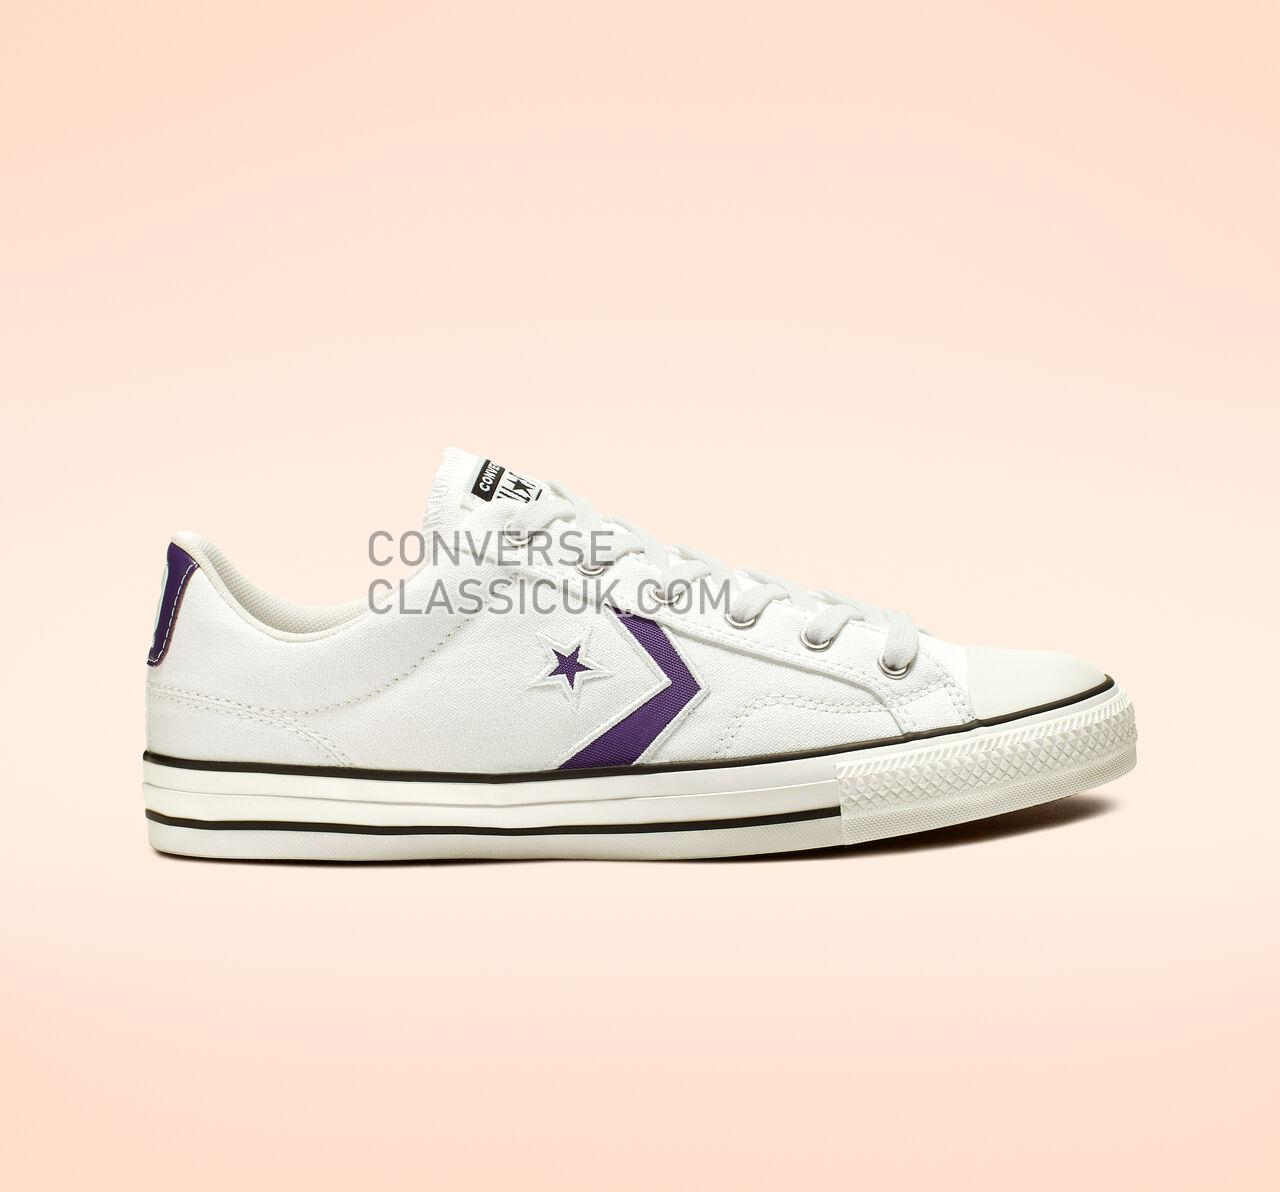 Converse Star Player Summer Sport Low Top Mens Womens Unisex 164402C White/Court Purple/White Shoes